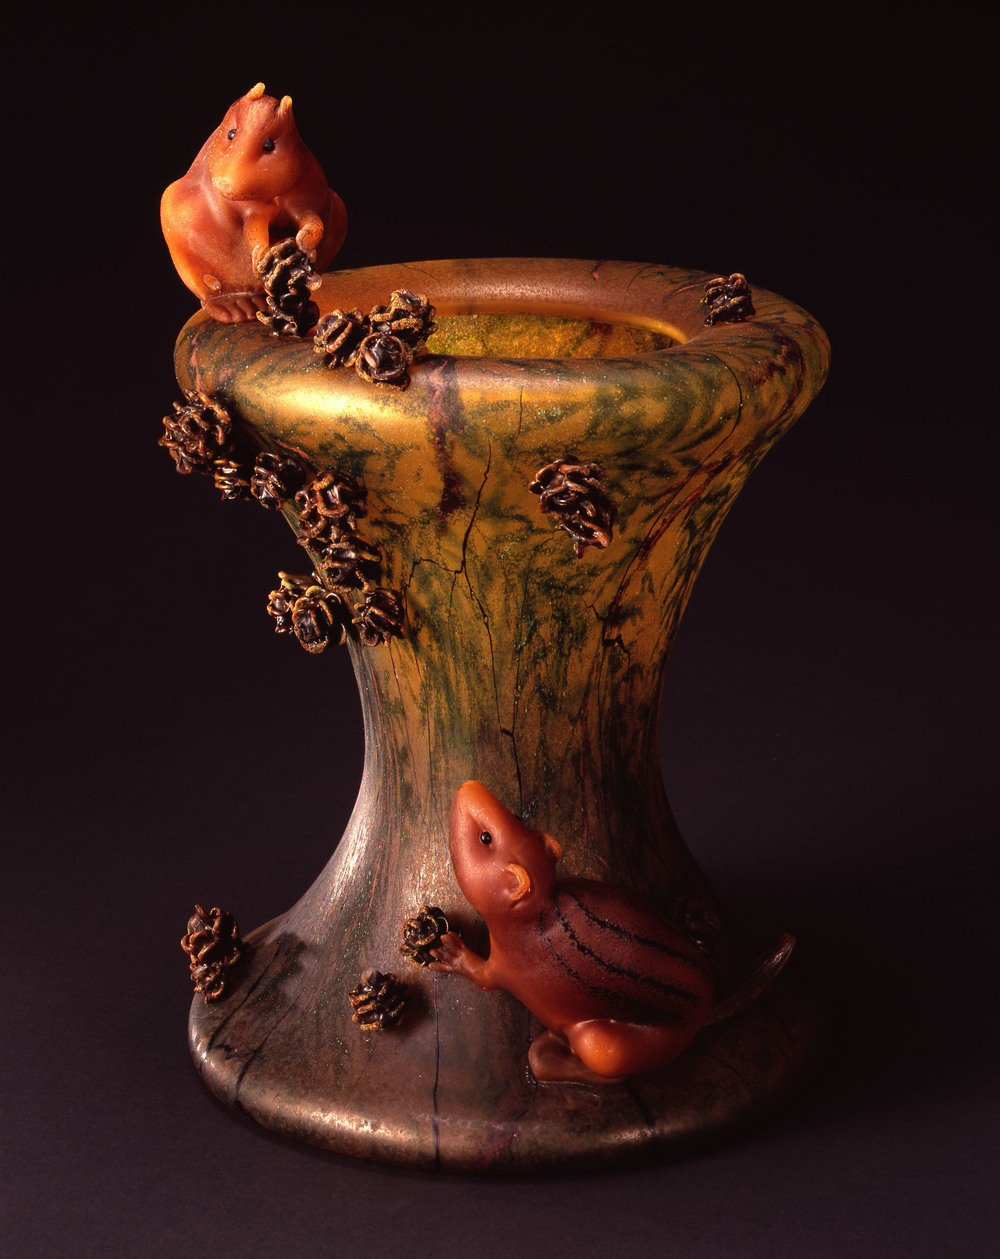 William Morris,  Vase with Cedar Boughs and Golden-mantled Ground Squirrels  (2004, glass, 14 3/4 x 10 1/4 x 9 5/8 inches), WM.55